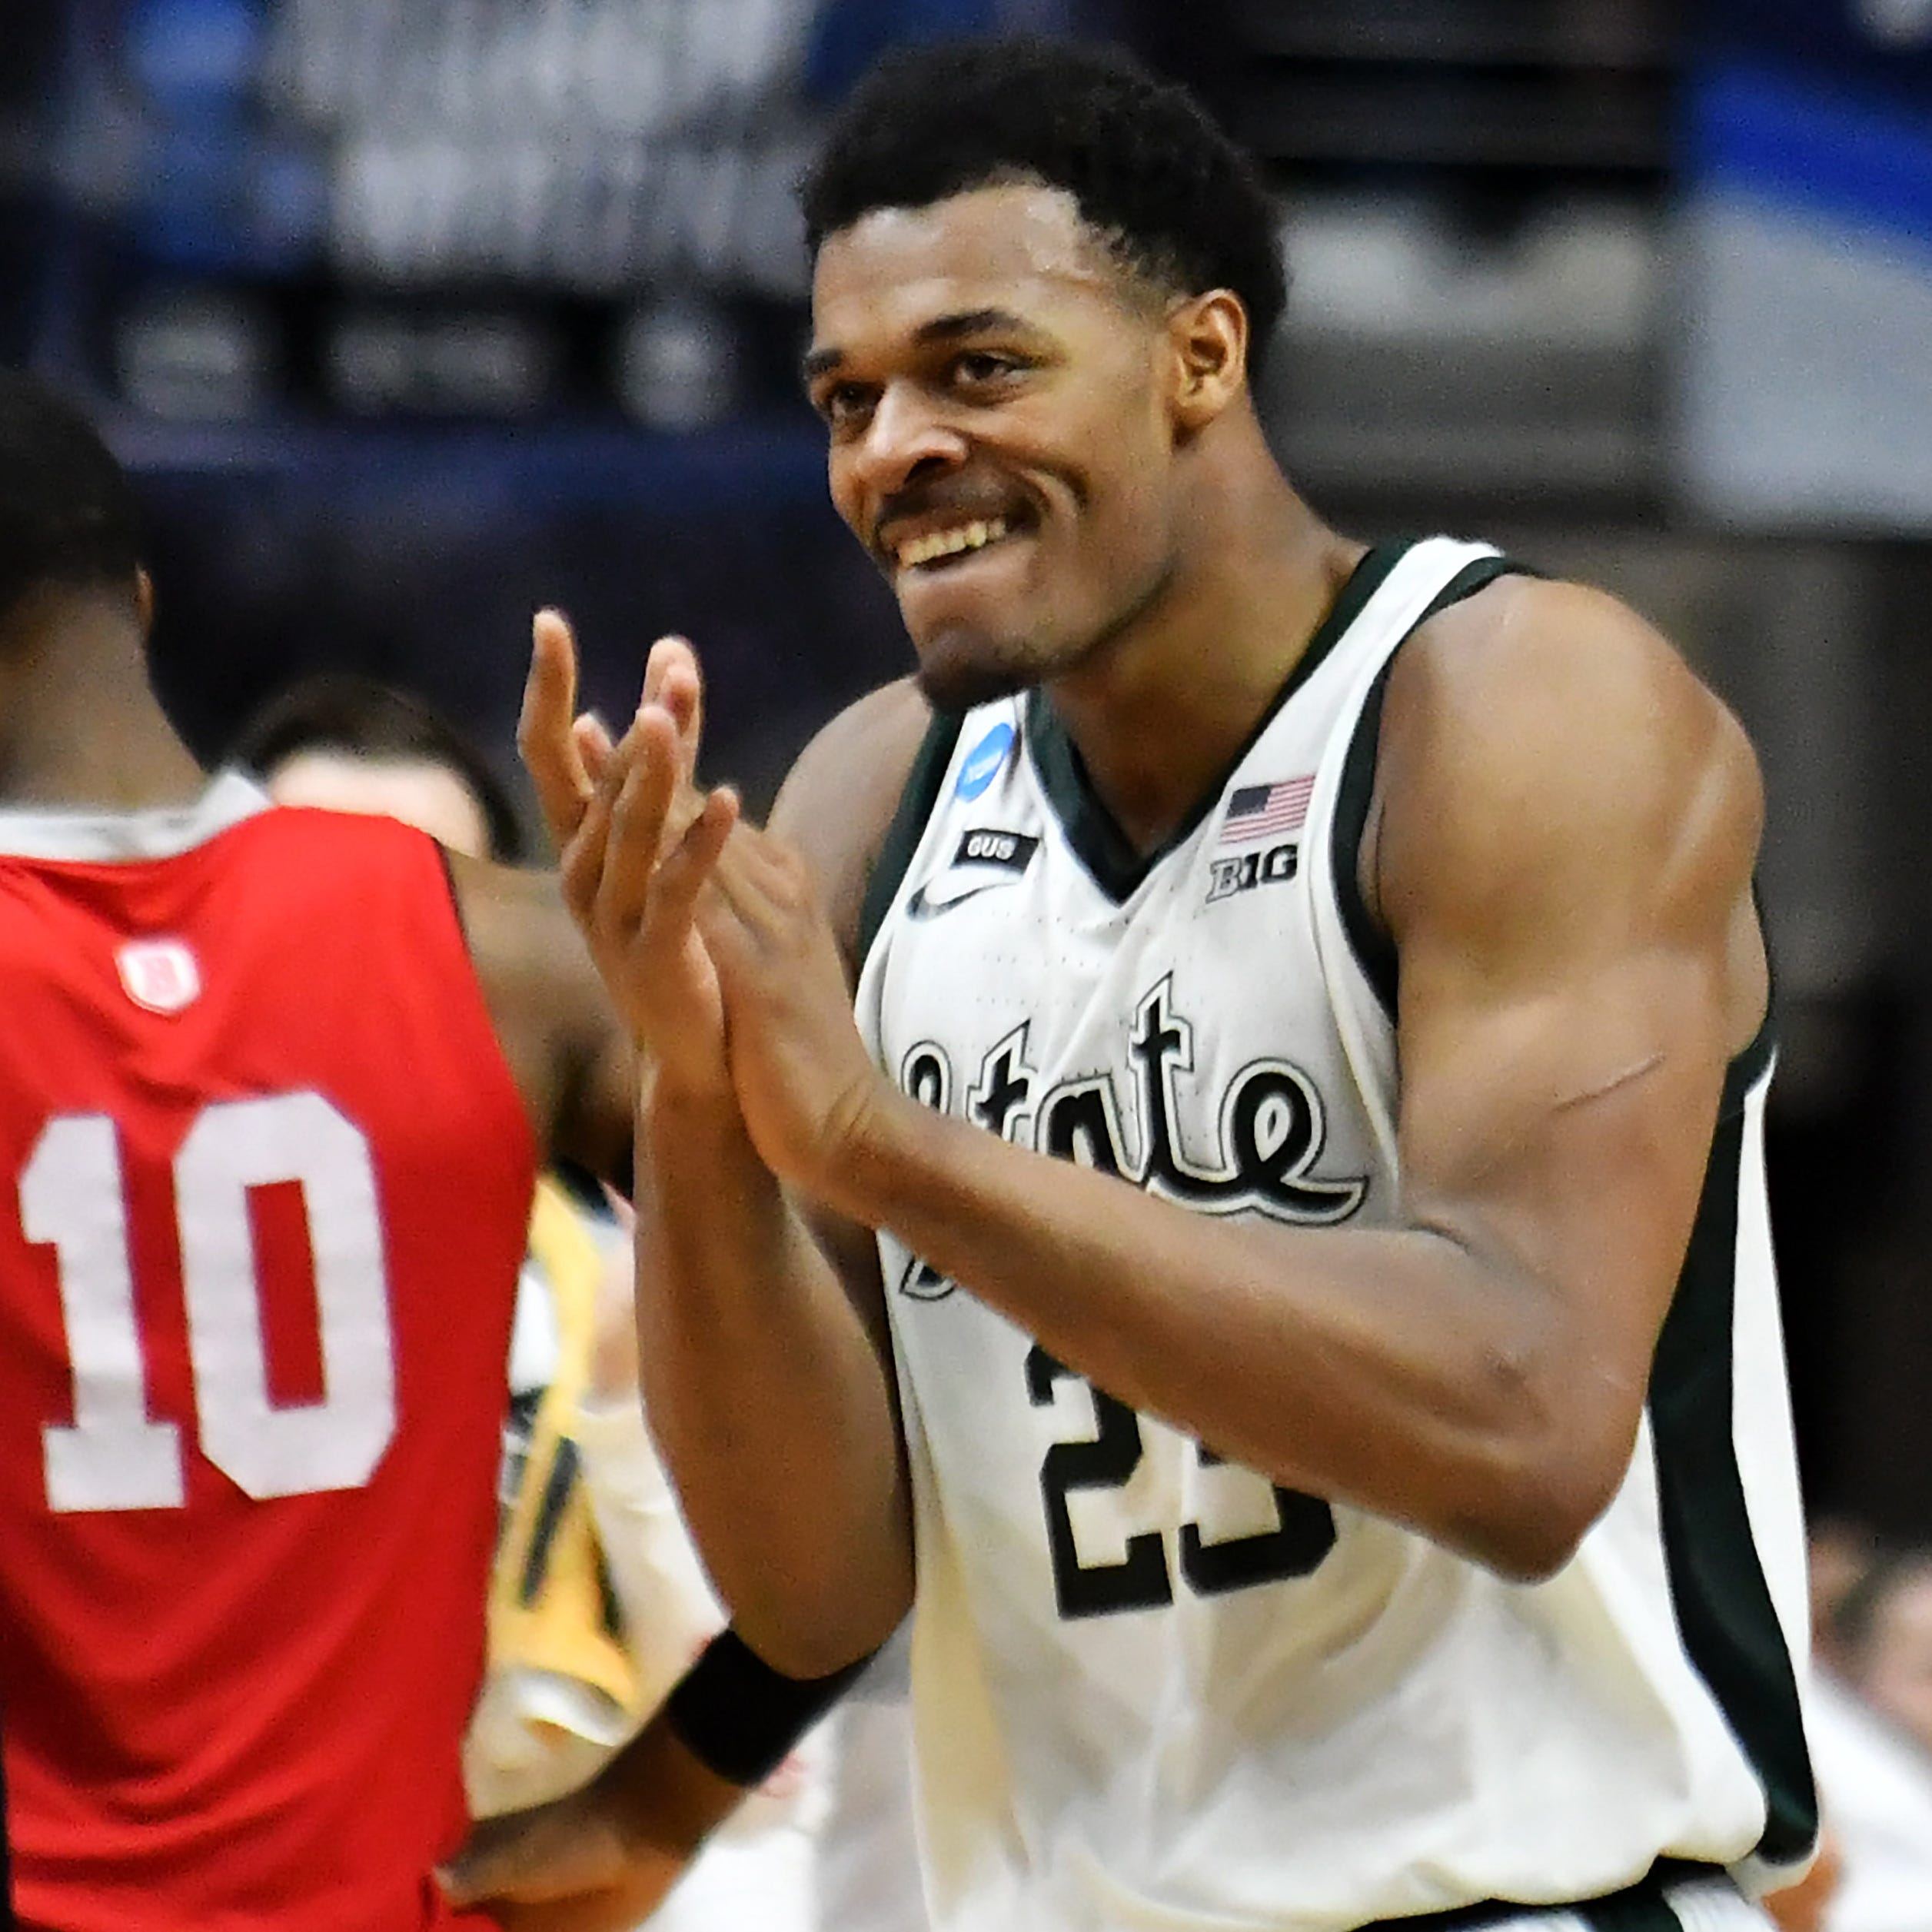 Michigan State tops 'way-too-early' basketball rankings; Michigan in top 10